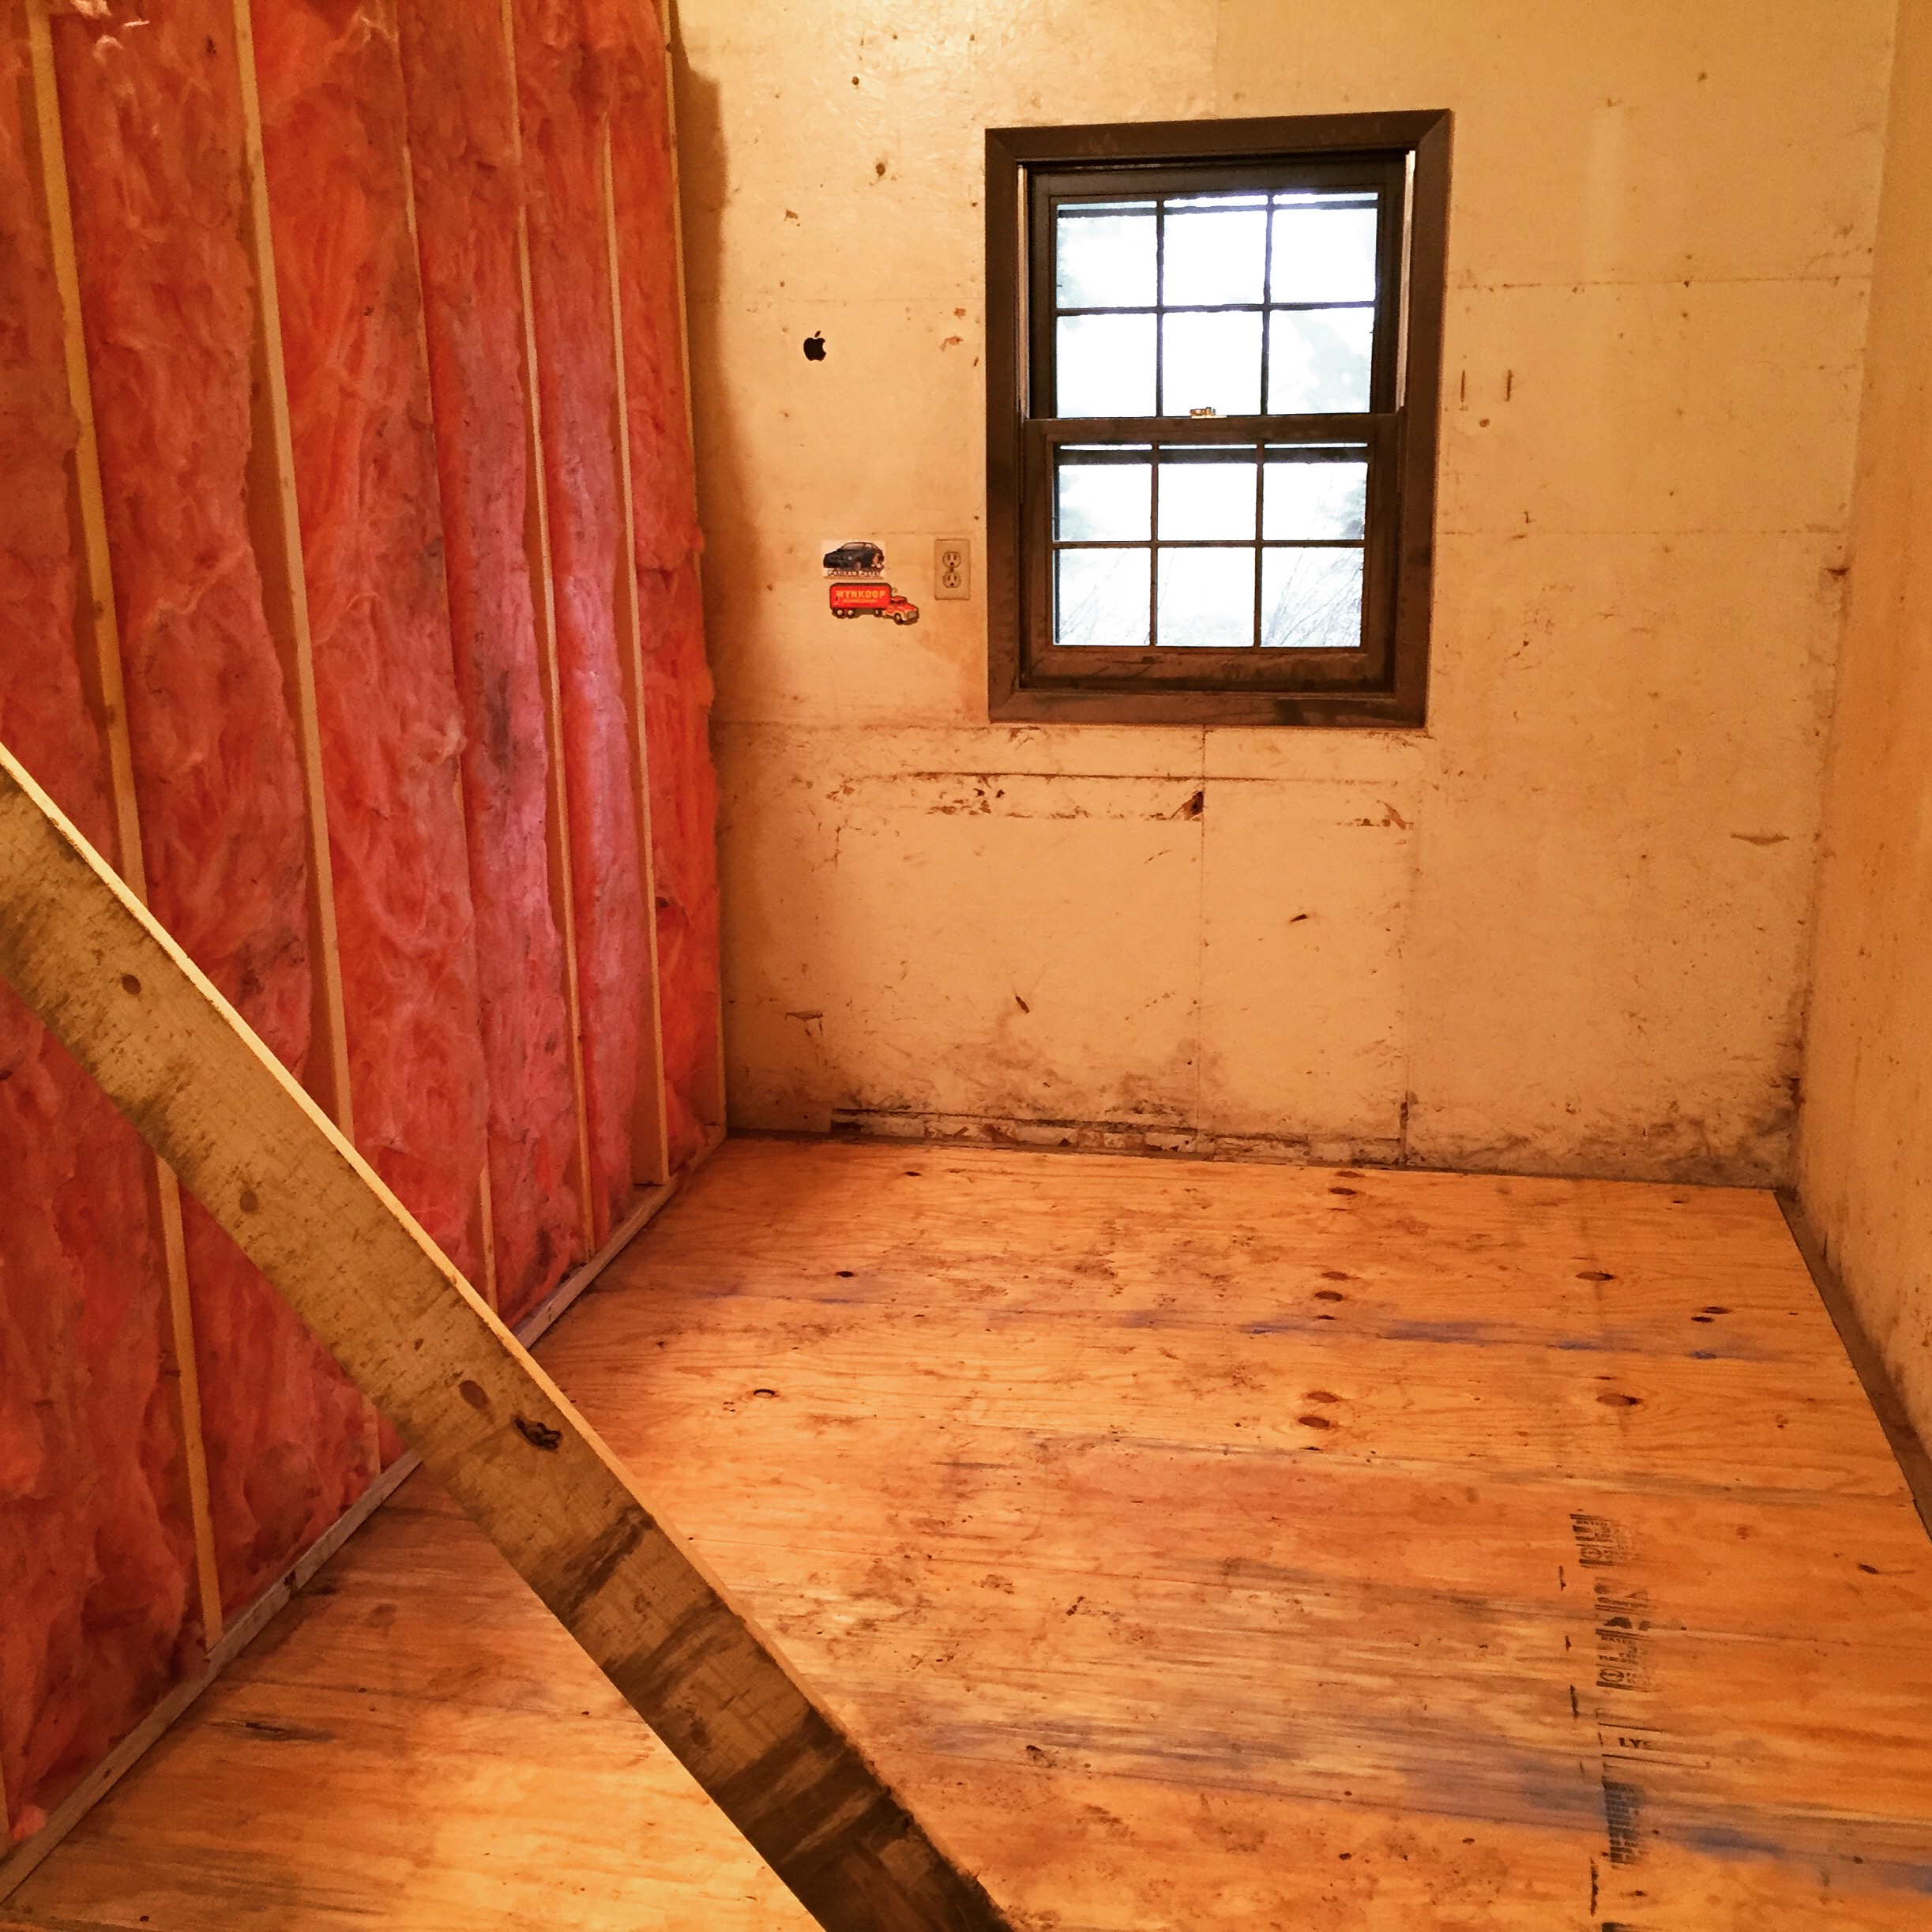 Unfinished walls with a brace to hold them up during test fits.